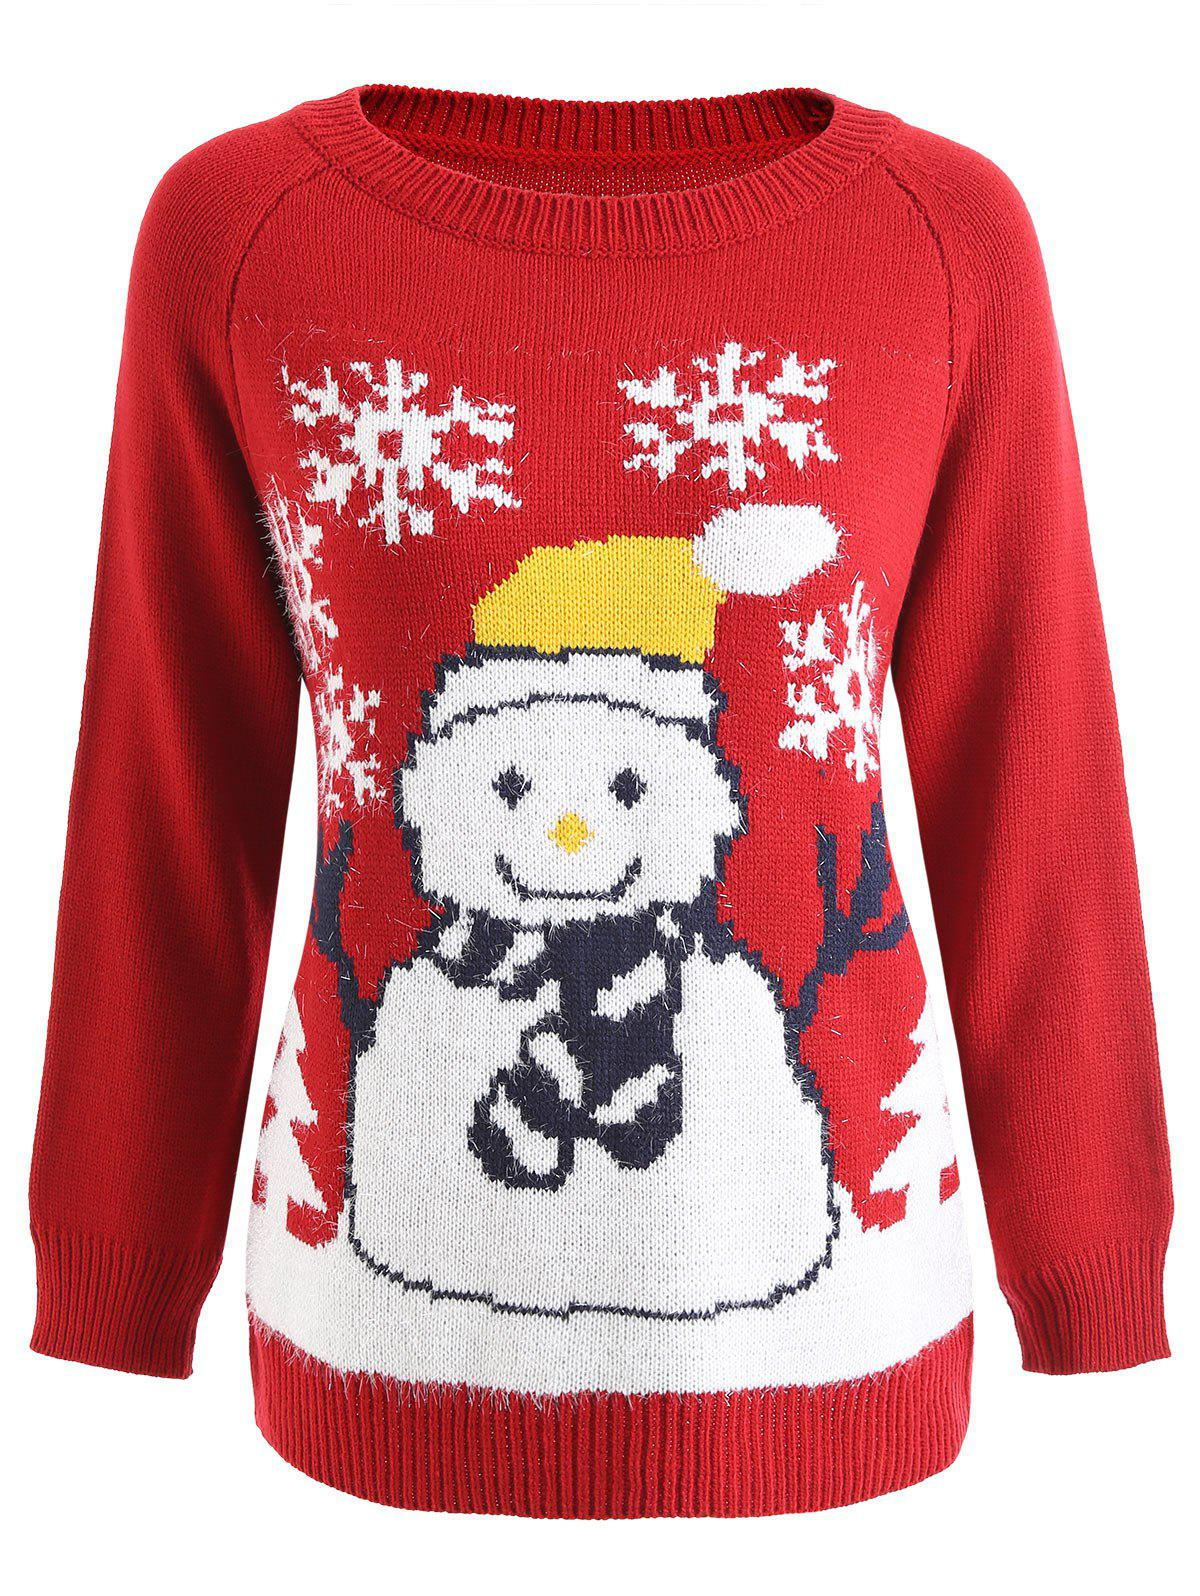 New Raglan Sleeve Snowman Graphic Christmas Sweater